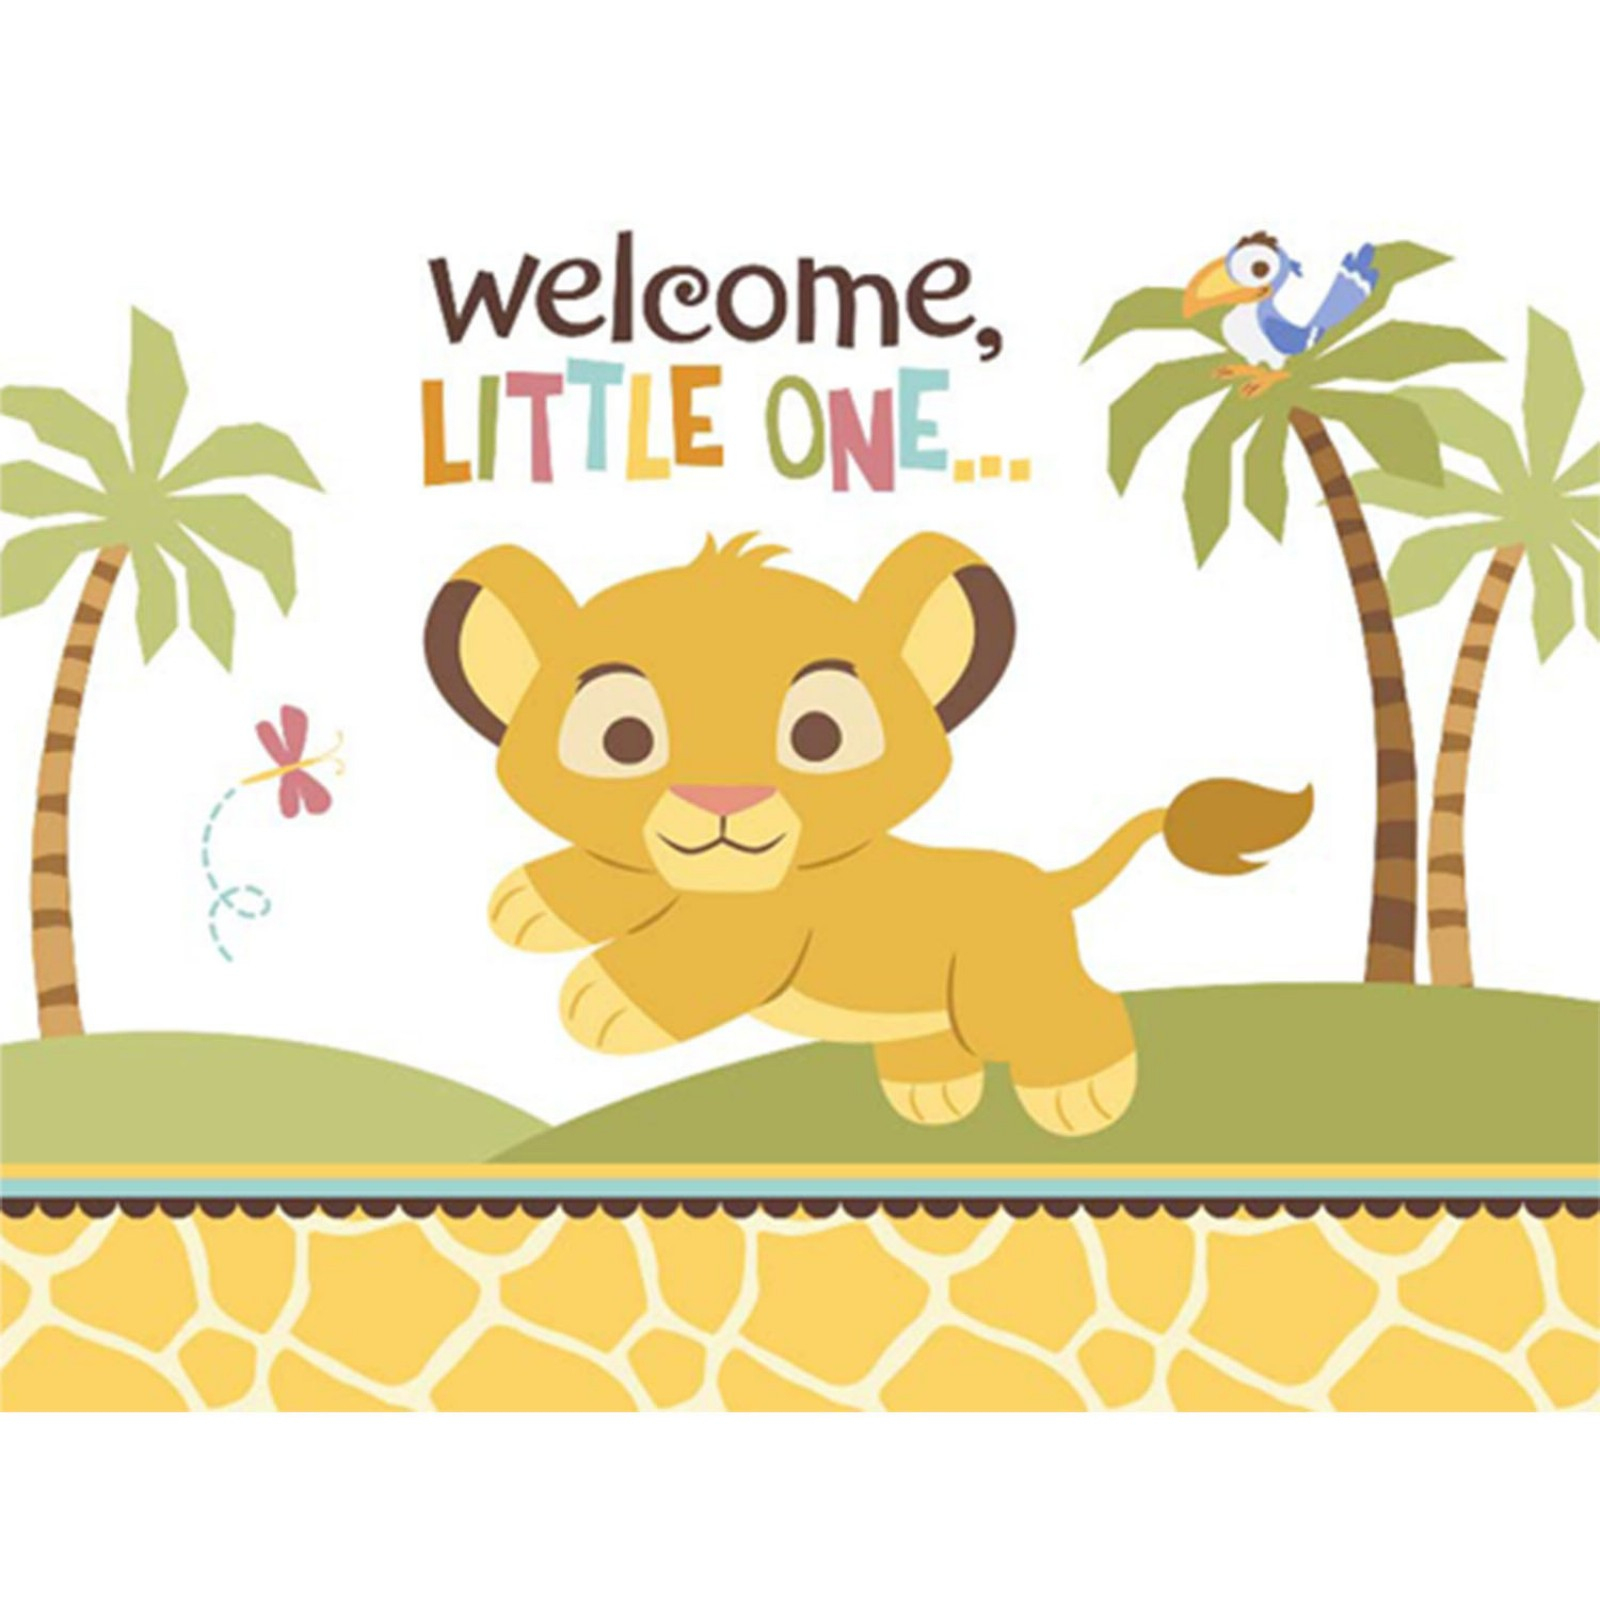 9 Free Lion King Baby Shower Invitations   Kittybabylove - Free Printable Lion King Baby Shower Invitations